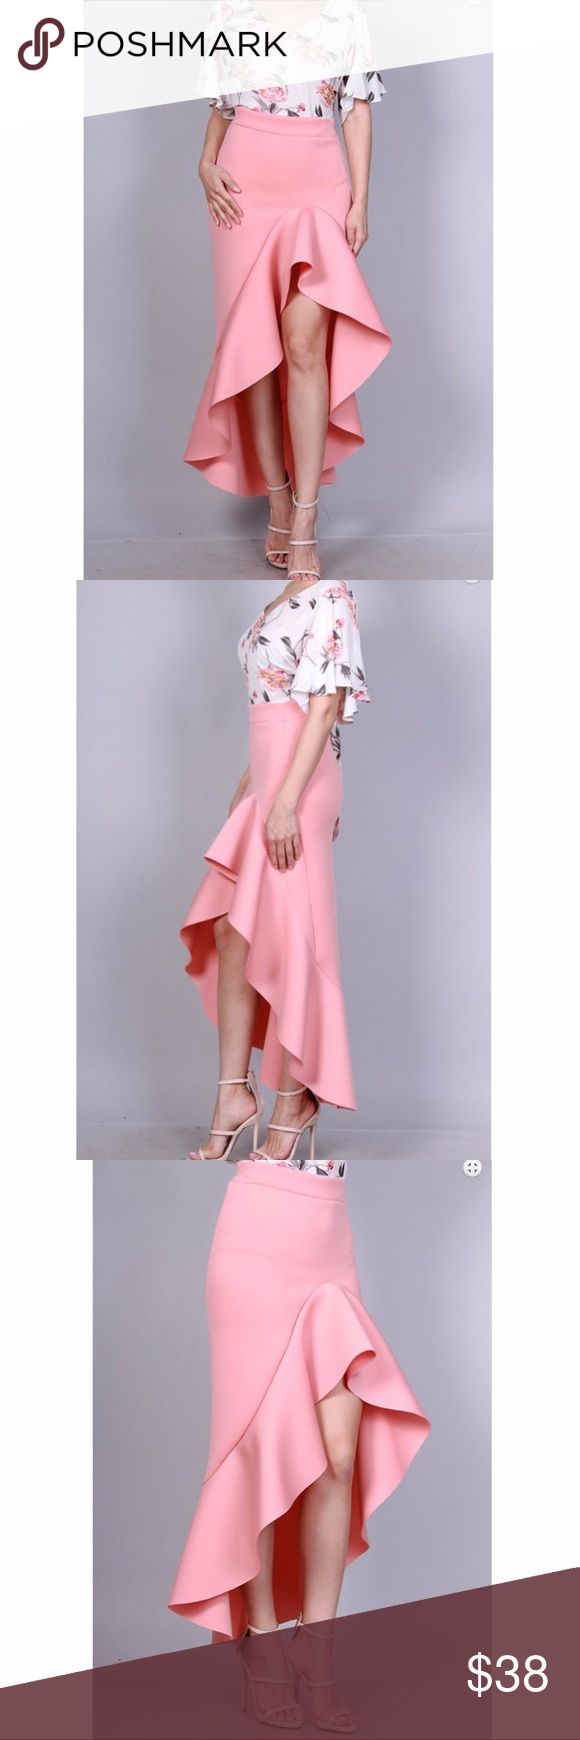 Pink High Waist Hi Lo Ruffle Bodycon Maxi Skirt Sexy Blush Pink High Waist Hi Lo Ruffle Maxi Skirt. Made of soft stretchy thick fabric. Made in USA. Brand New factory direct.  Size S 2/4: Bust 33-34 Waist 25-26 Hips 35-36 Size M 6/8: Bust 35-36 Waist 27-28 Hips 37-38 Size L 10/12: Bust 37-38 Waist 29-30 Hips 39-40  Size chart provided as a guidance. Skirts High Low